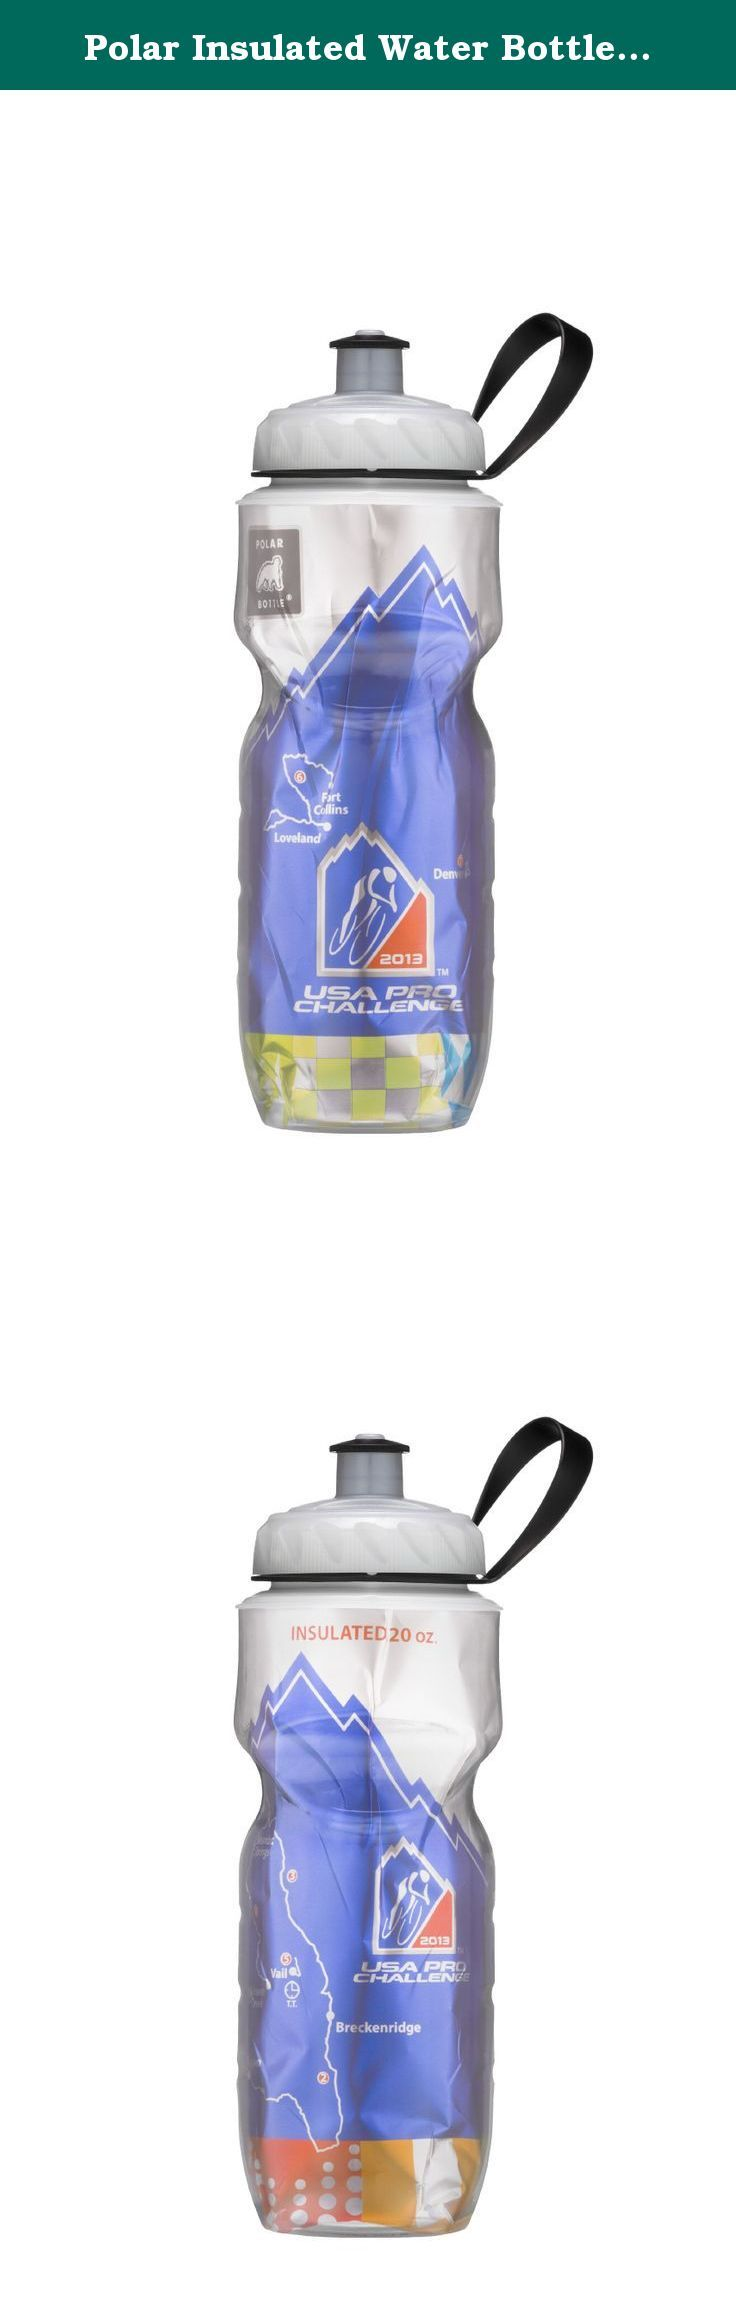 Polar Insulated Water Bottle (20-Ounce, 2013 Commemorative USA Pro Cycling Challenge). Polar Bottle is the original insulated plastic sport bottle and has been keeping liquids colder, longer, since 1994. The bottle has evolved in the years since with brightly colored foil liners and patterns and an innovative removable valve system. Made in America, Polar Bottle is popular throughout the world. Combining the thermal properties of an insulated vacuum bottle with the lightweight, flexible...